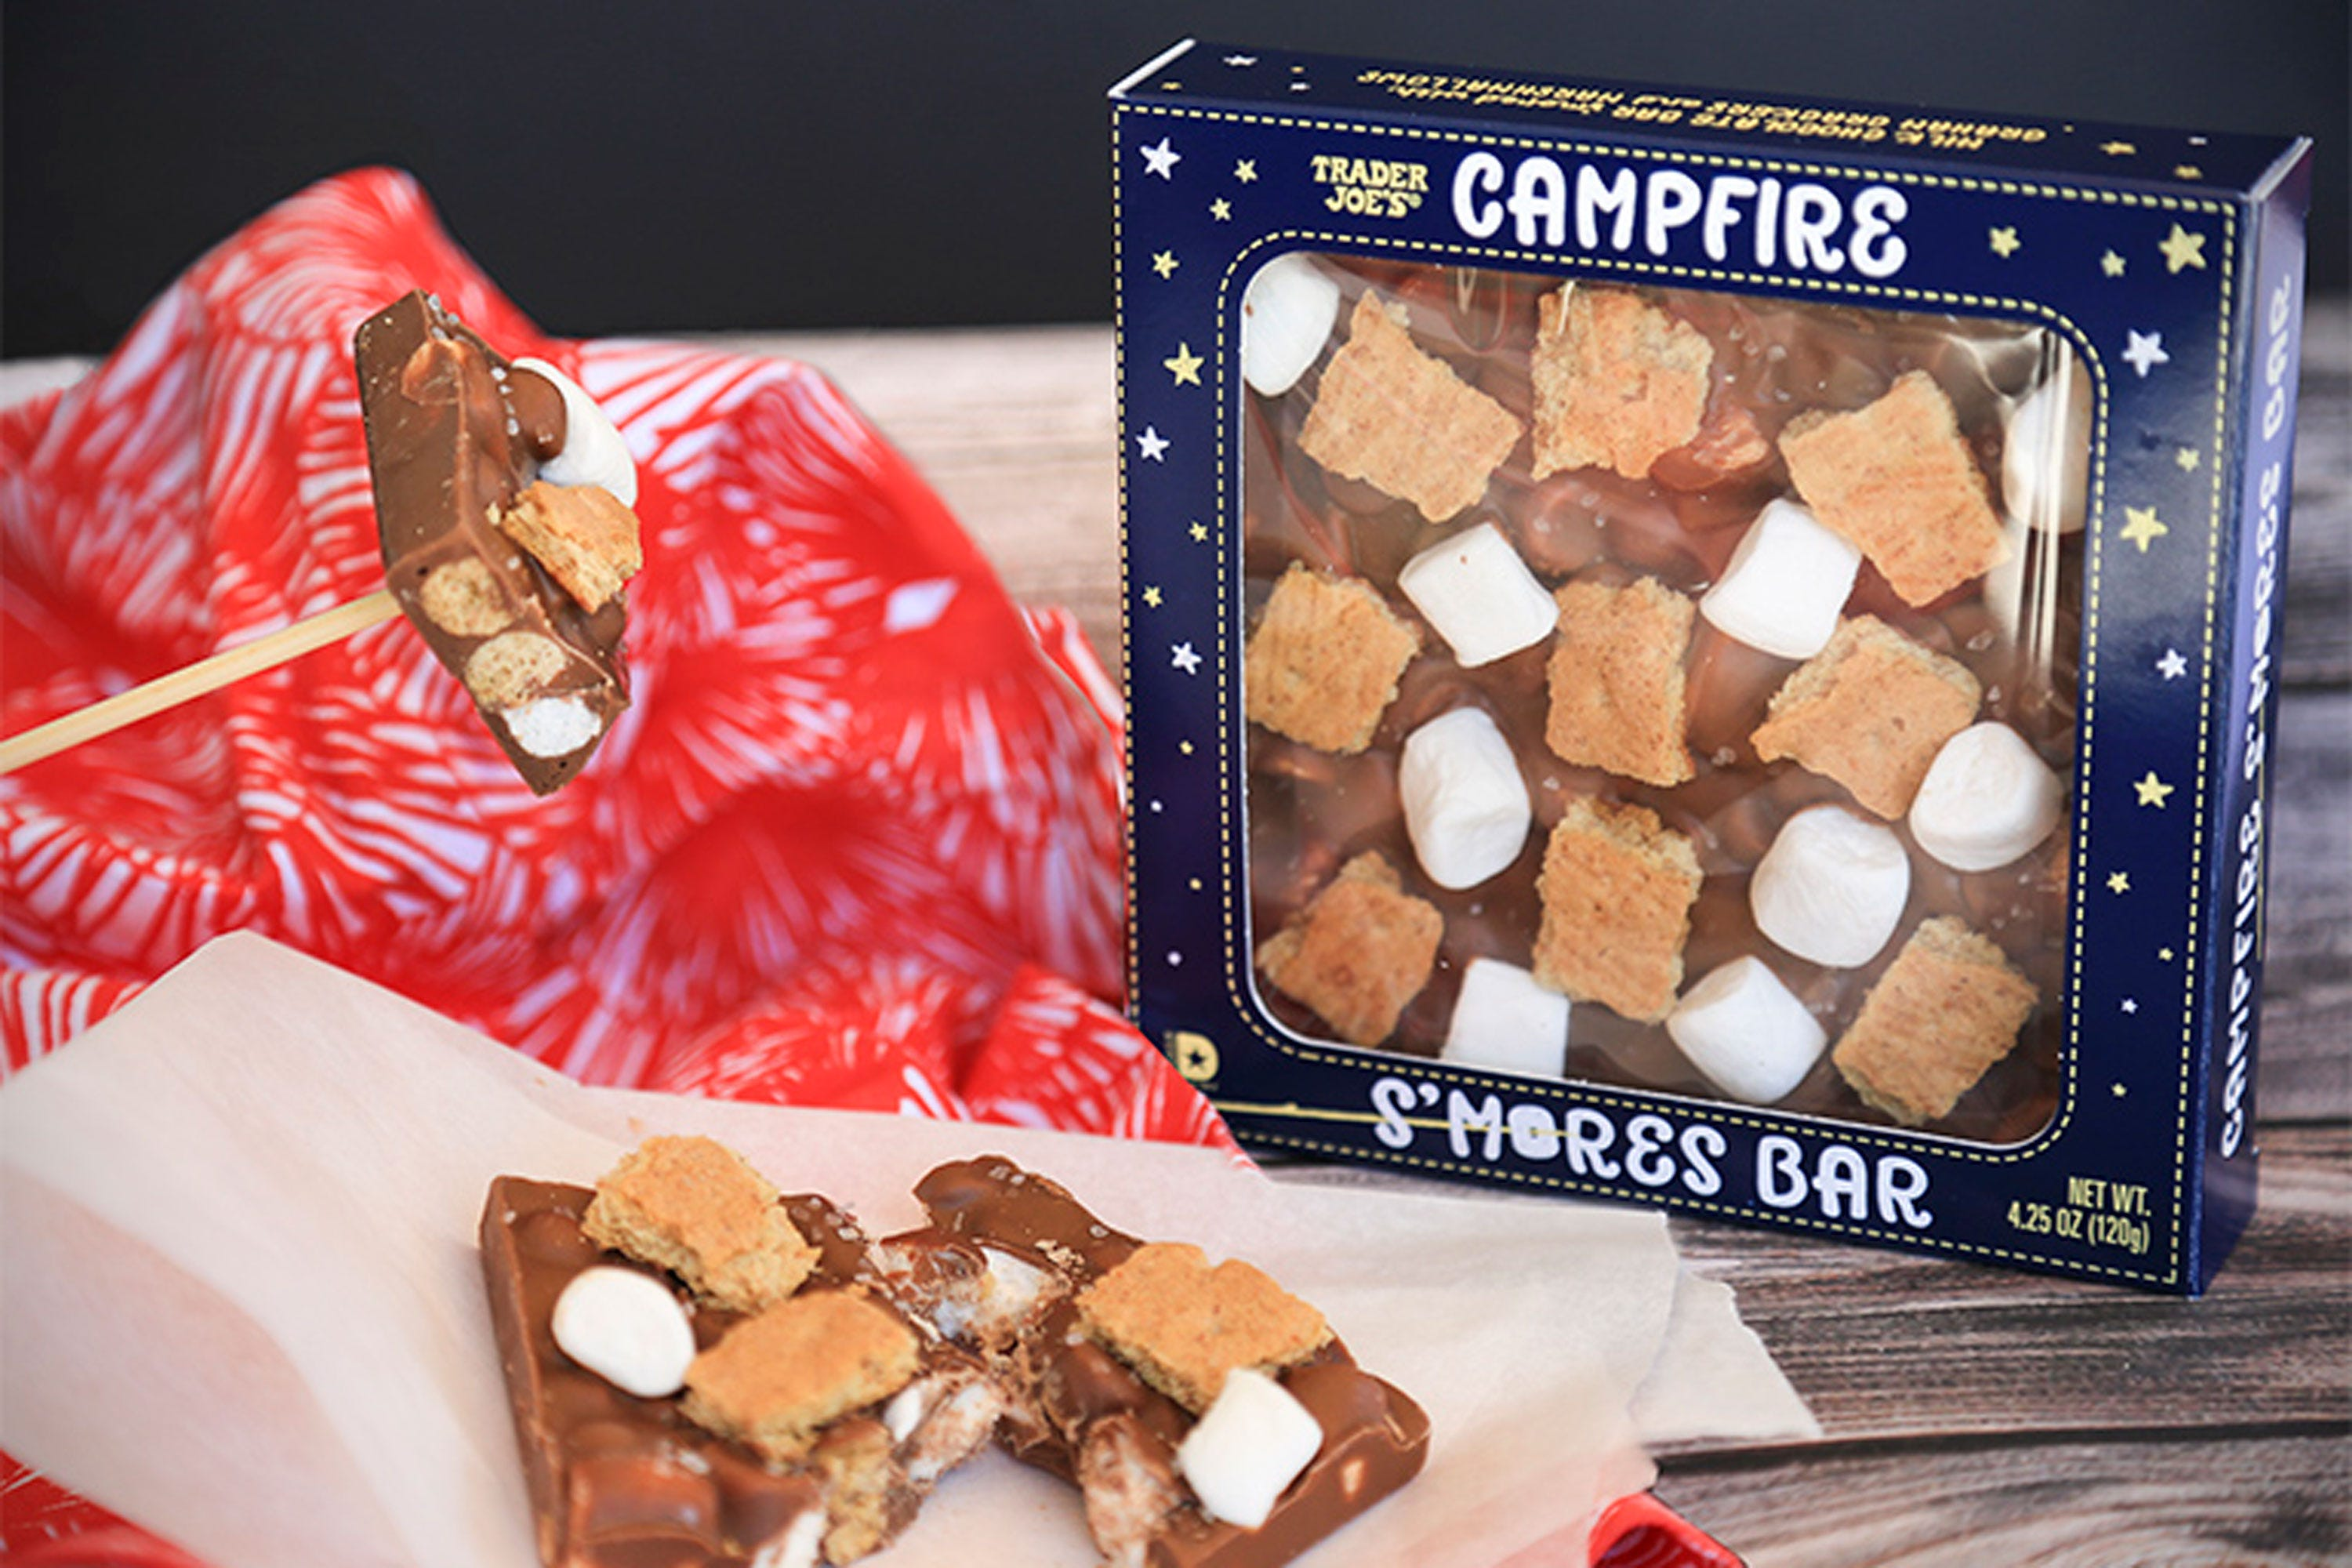 Trader Joes Just Released Our Favorite Campfire Treat In Candy Bar Form